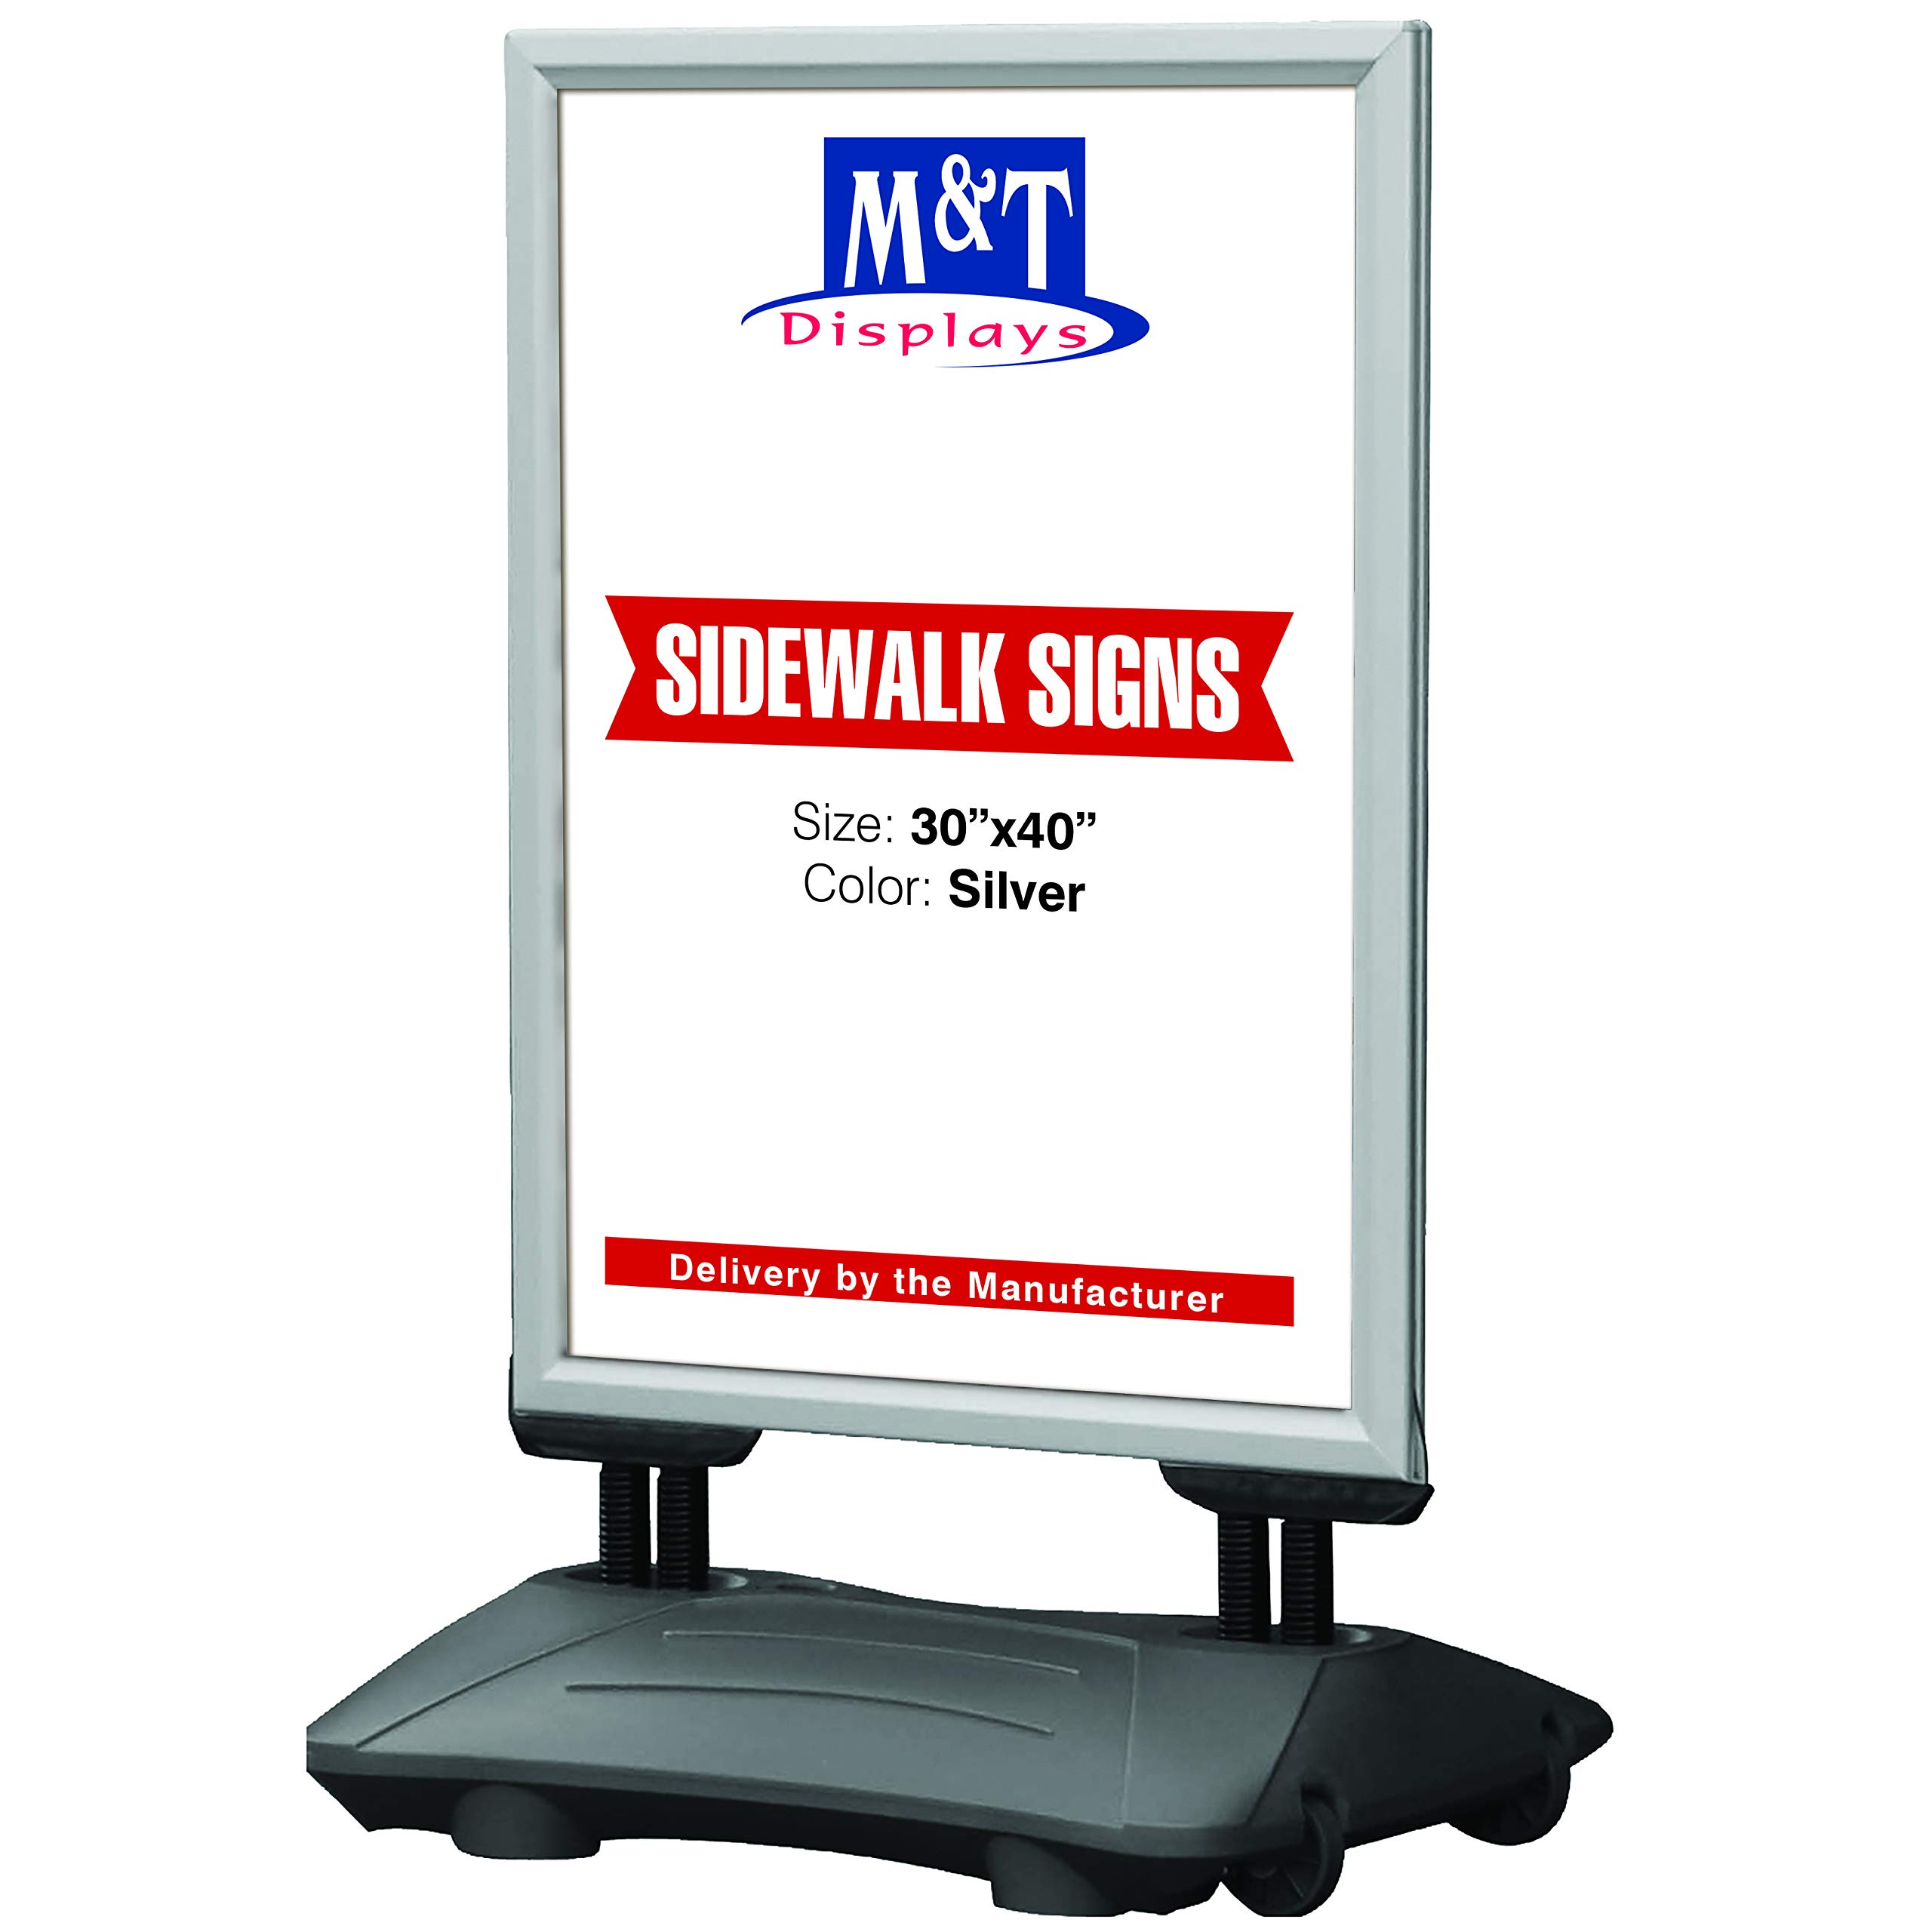 Outdoor Display Advertising Sidewalk Sign for 30x40 Inch Posters, Snap Open Frame, Double Sided, Water Base, High Wind Resistant with Spring Base by M&T Displays (Image #1)